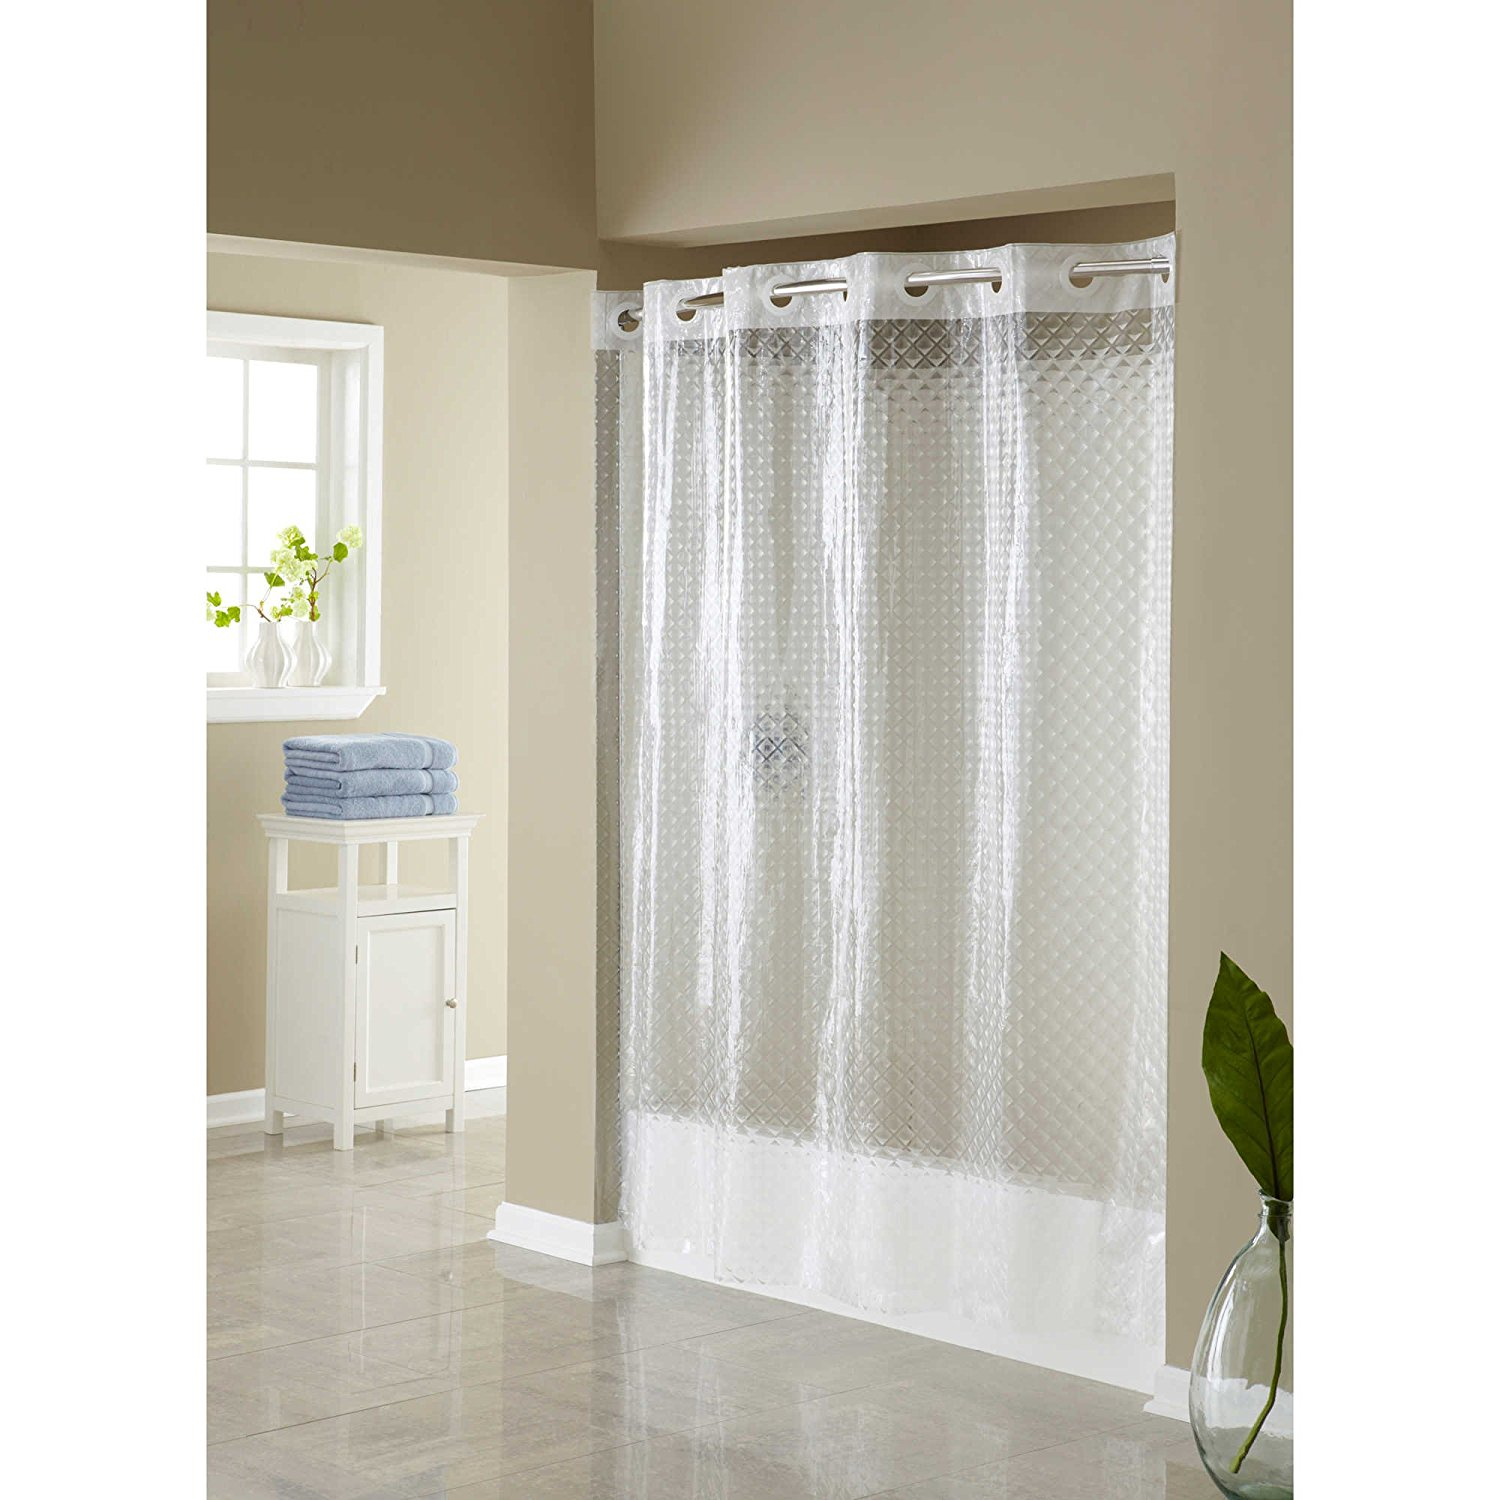 Shower Curtains For Less Hangs In Seconds Eva Shower Curtain Clear Diamond It Allows You To Hang The Curtain In Less Than 10 Seconds By Hookless